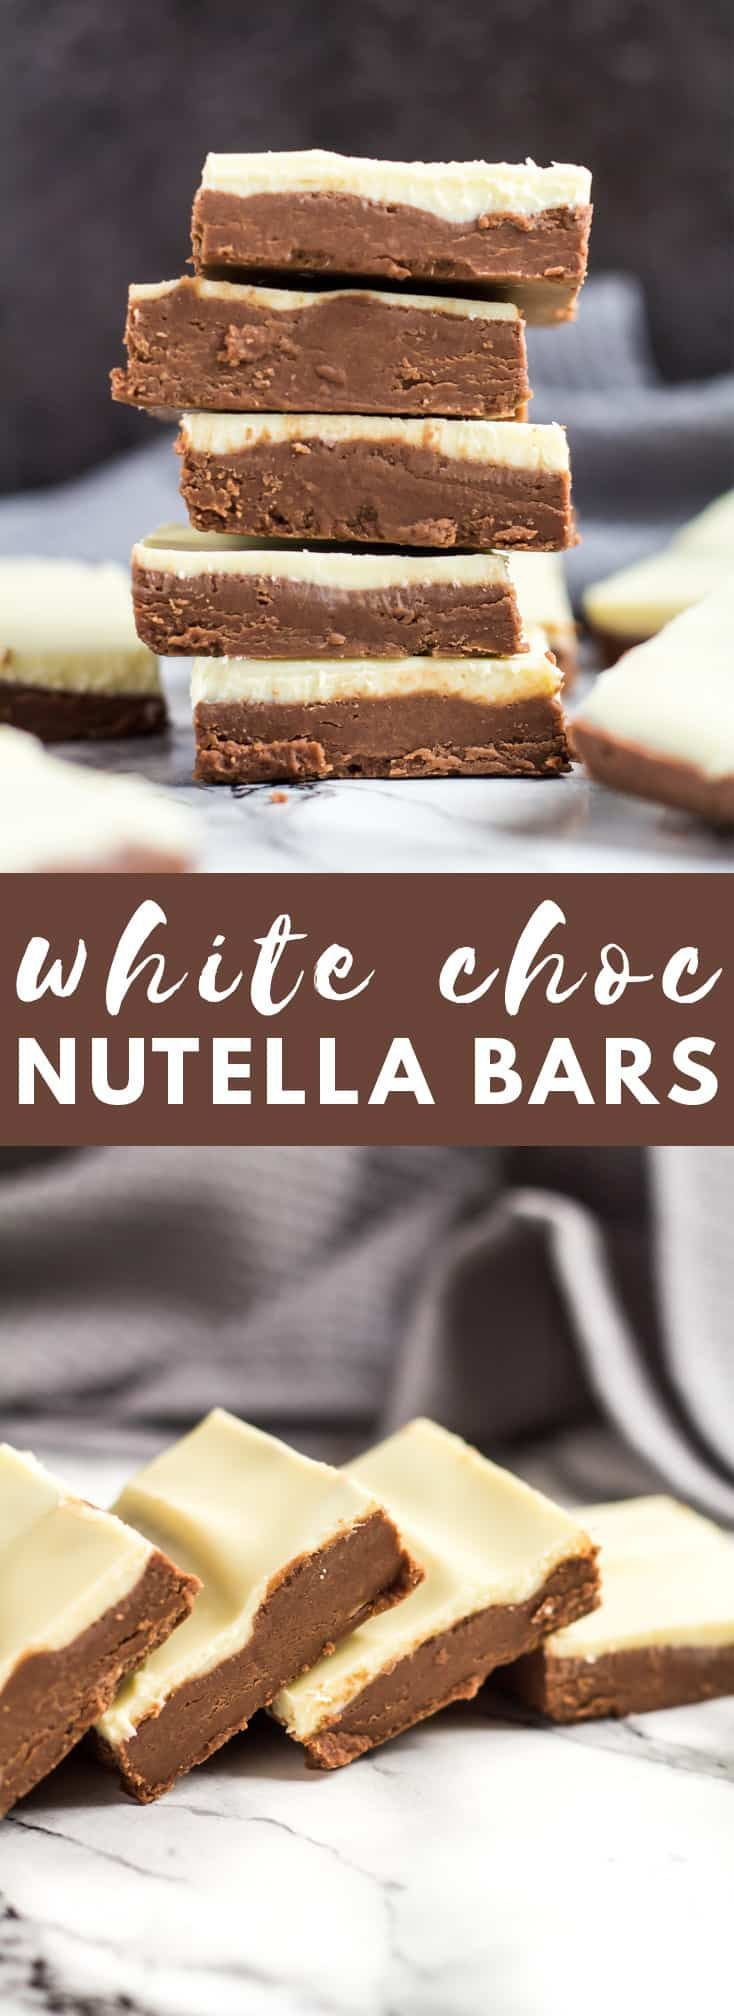 No-Bake White Chocolate Nutella Bars-Deliciously creamy and fudgy no-bake Nutella bars topped with white chocolate. A perfect quick and easy chocolate treat! #nobake #whitechocolate #nutella #bars